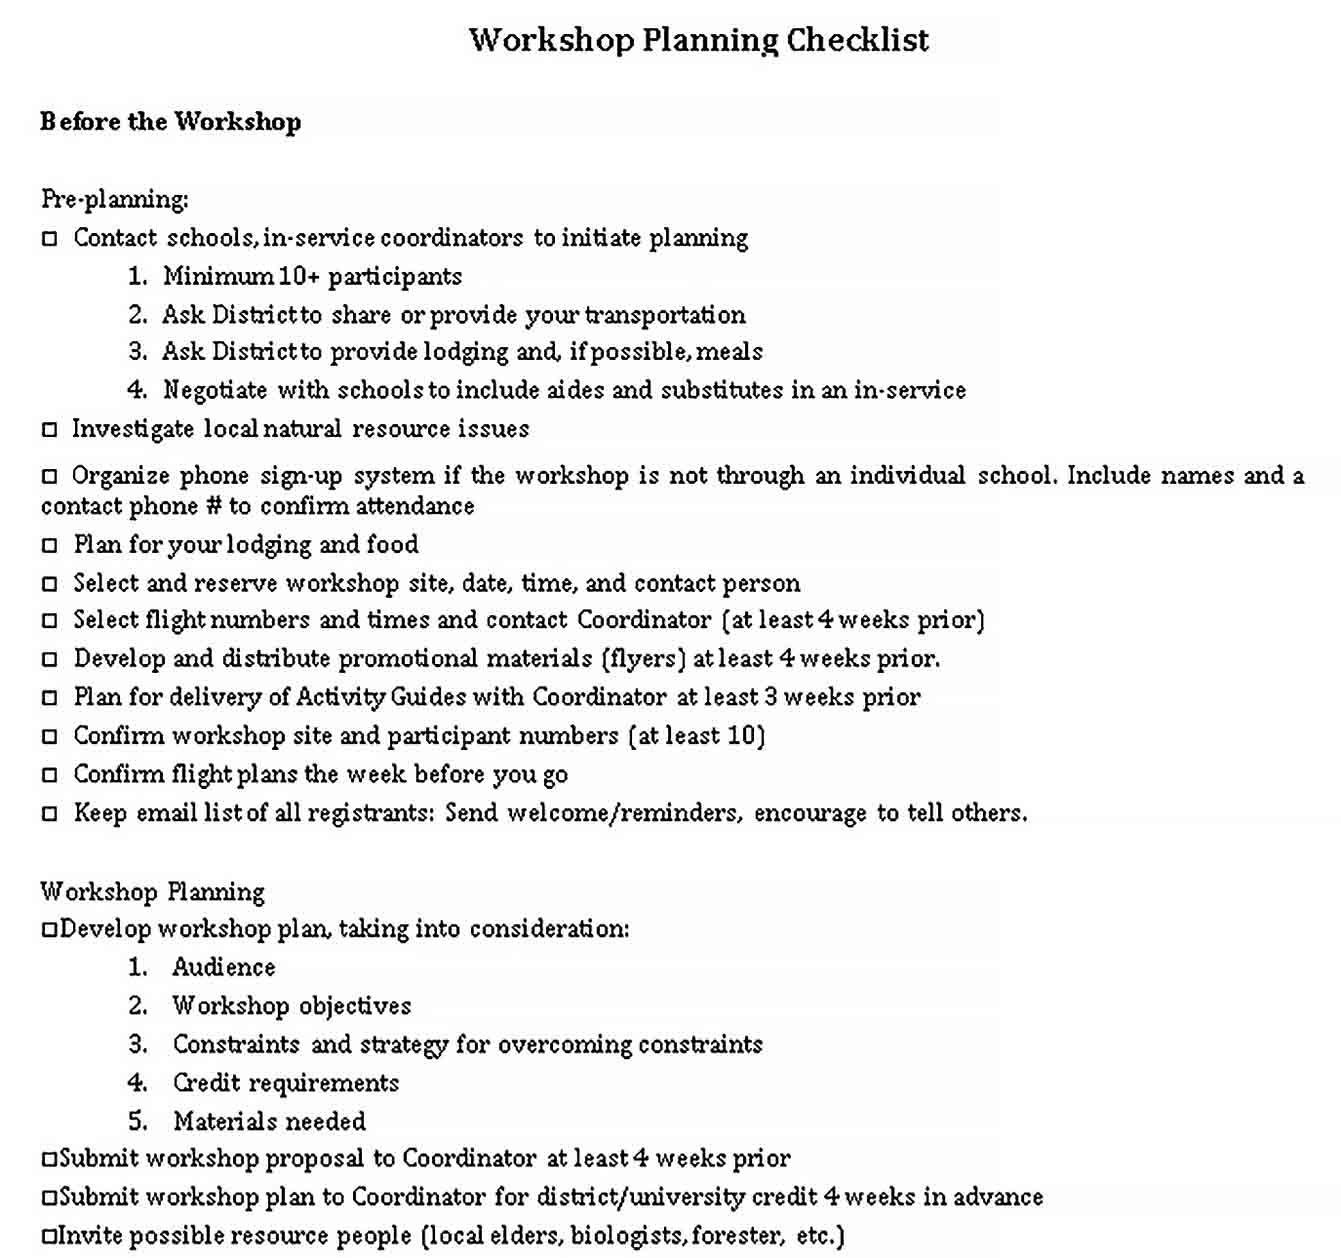 Template Daily Workshop Planning Checklist Sample